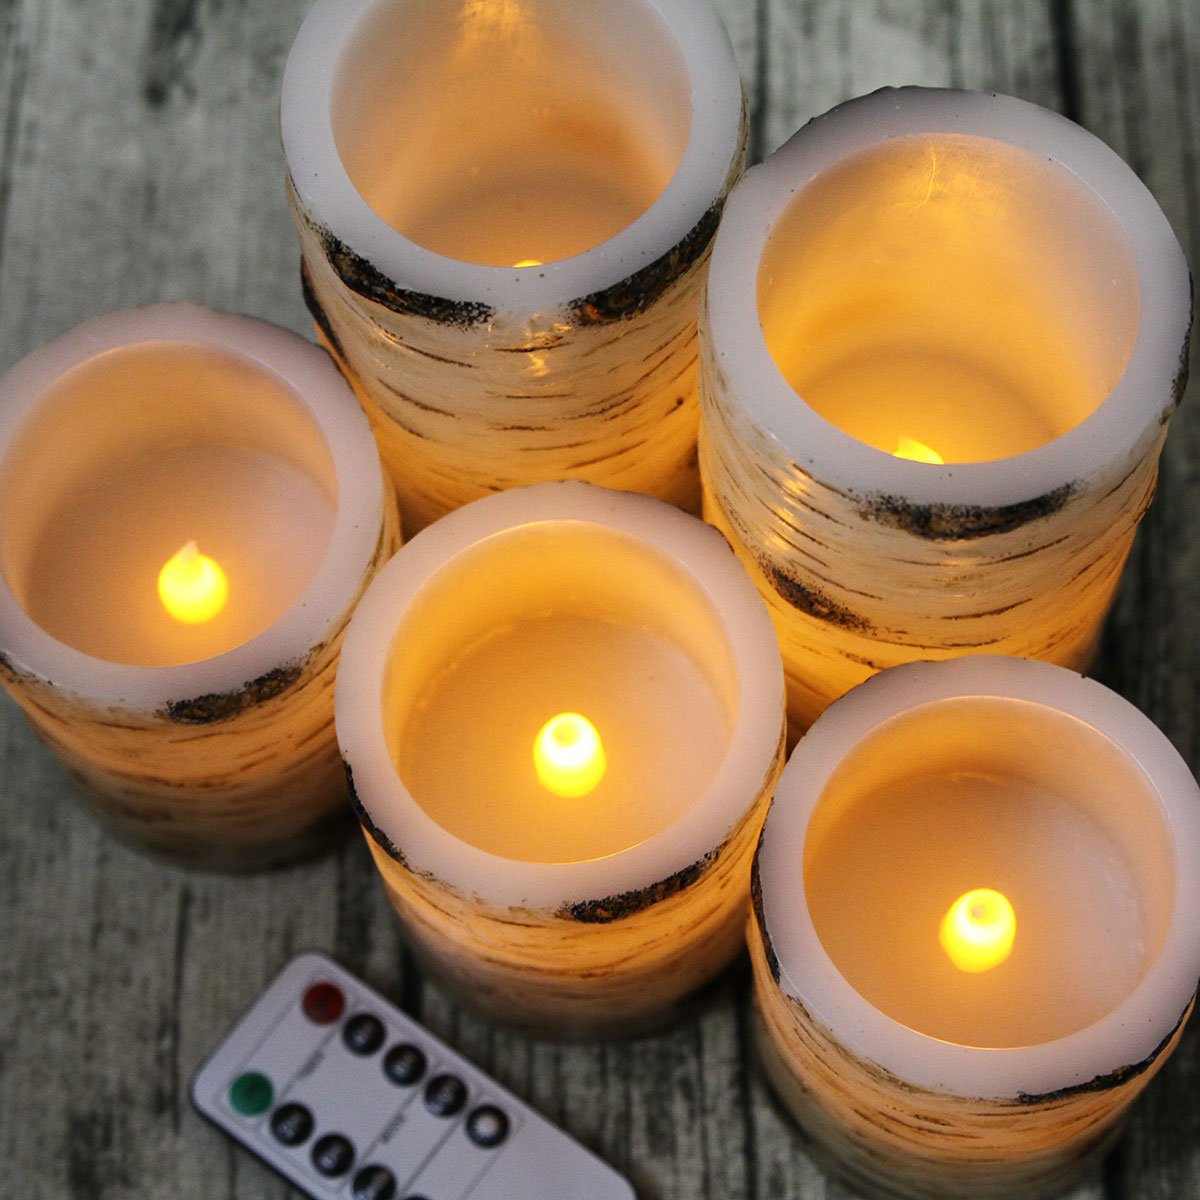 Pandaing Set of 5 Pillar Birch Bark Effect Flameless LED Candles with 10-key Remote Control and 2 4 6 or 8 Hours Timer Function by Pandaing (Image #3)